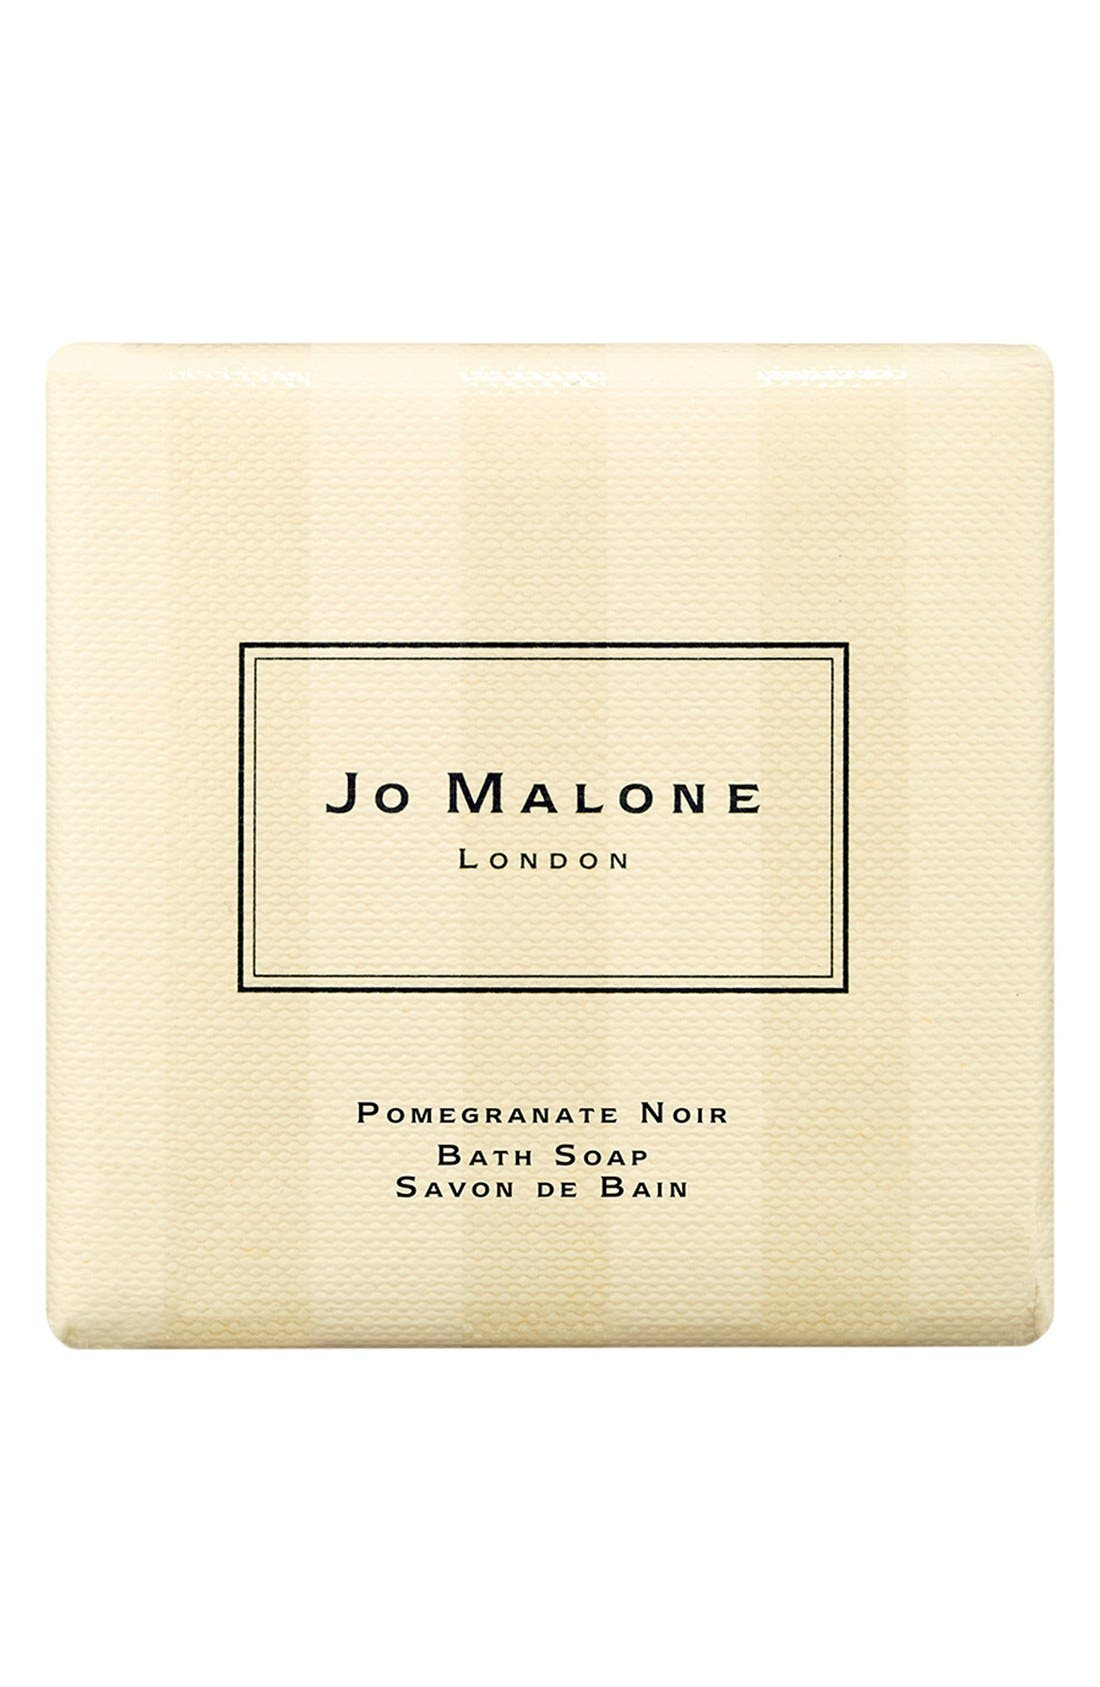 Jo Malone London™ 'Pomegranate Noir' Bath Soap